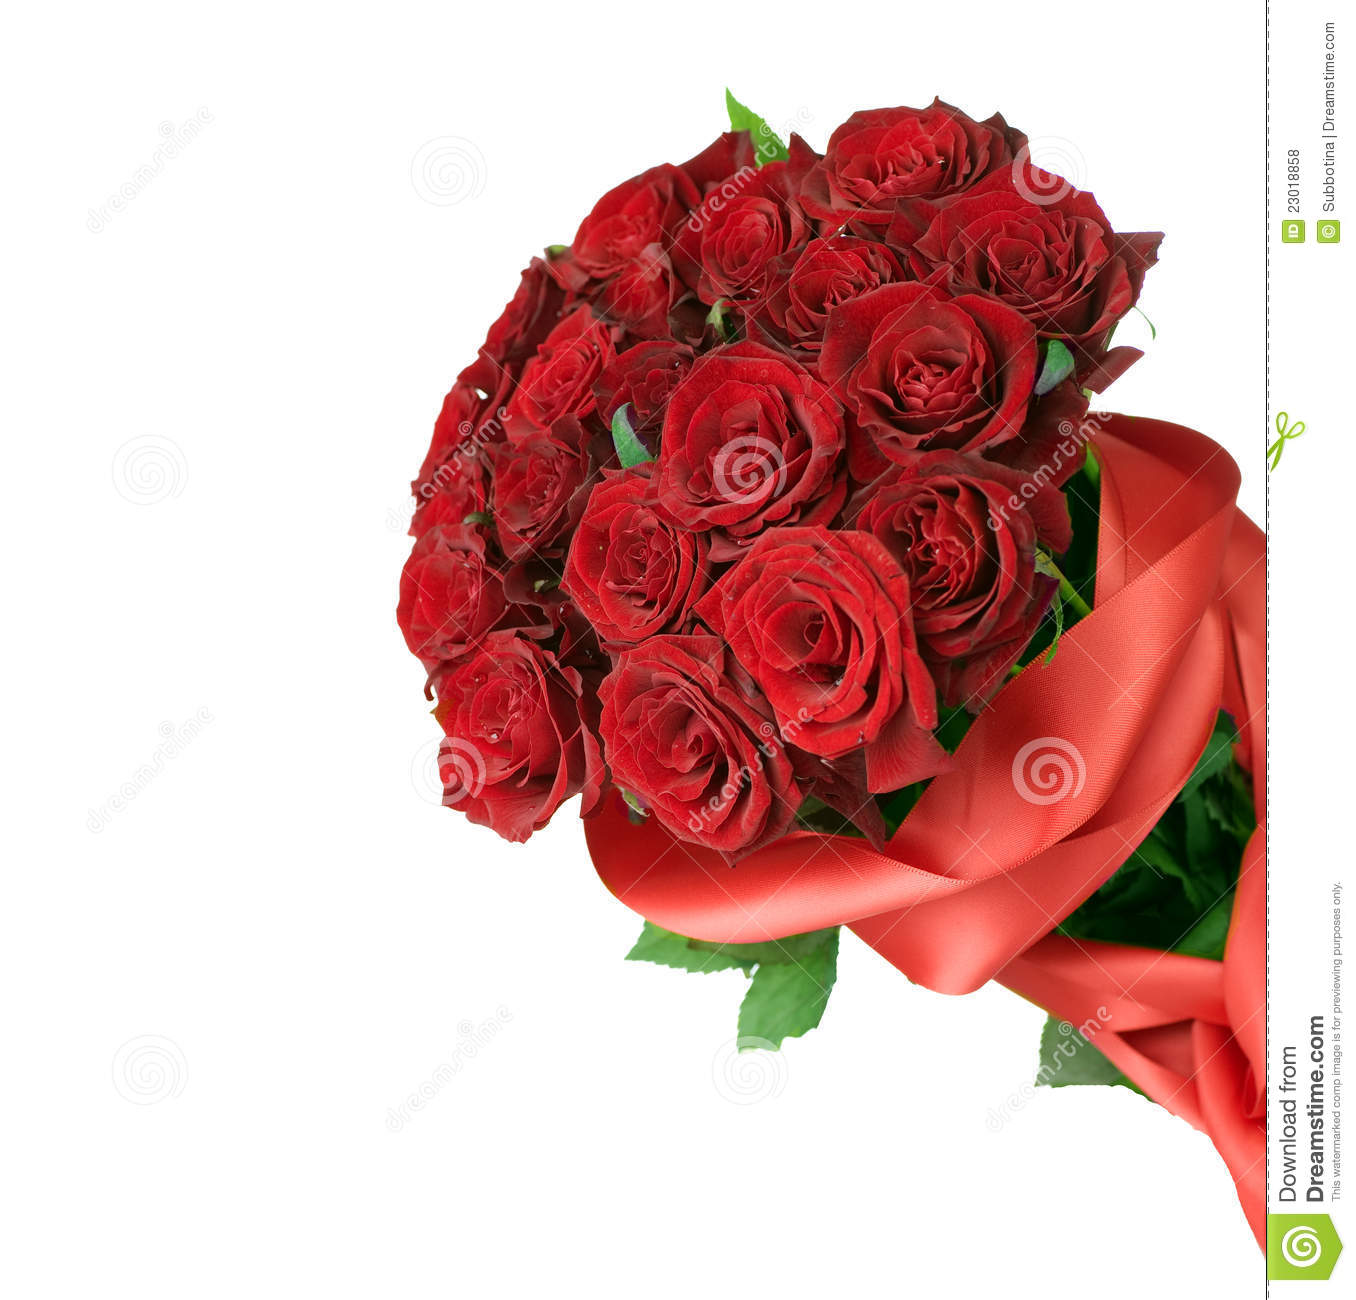 Rose Flowers Bouquet stock photo. Image of copy, floral - 23018858